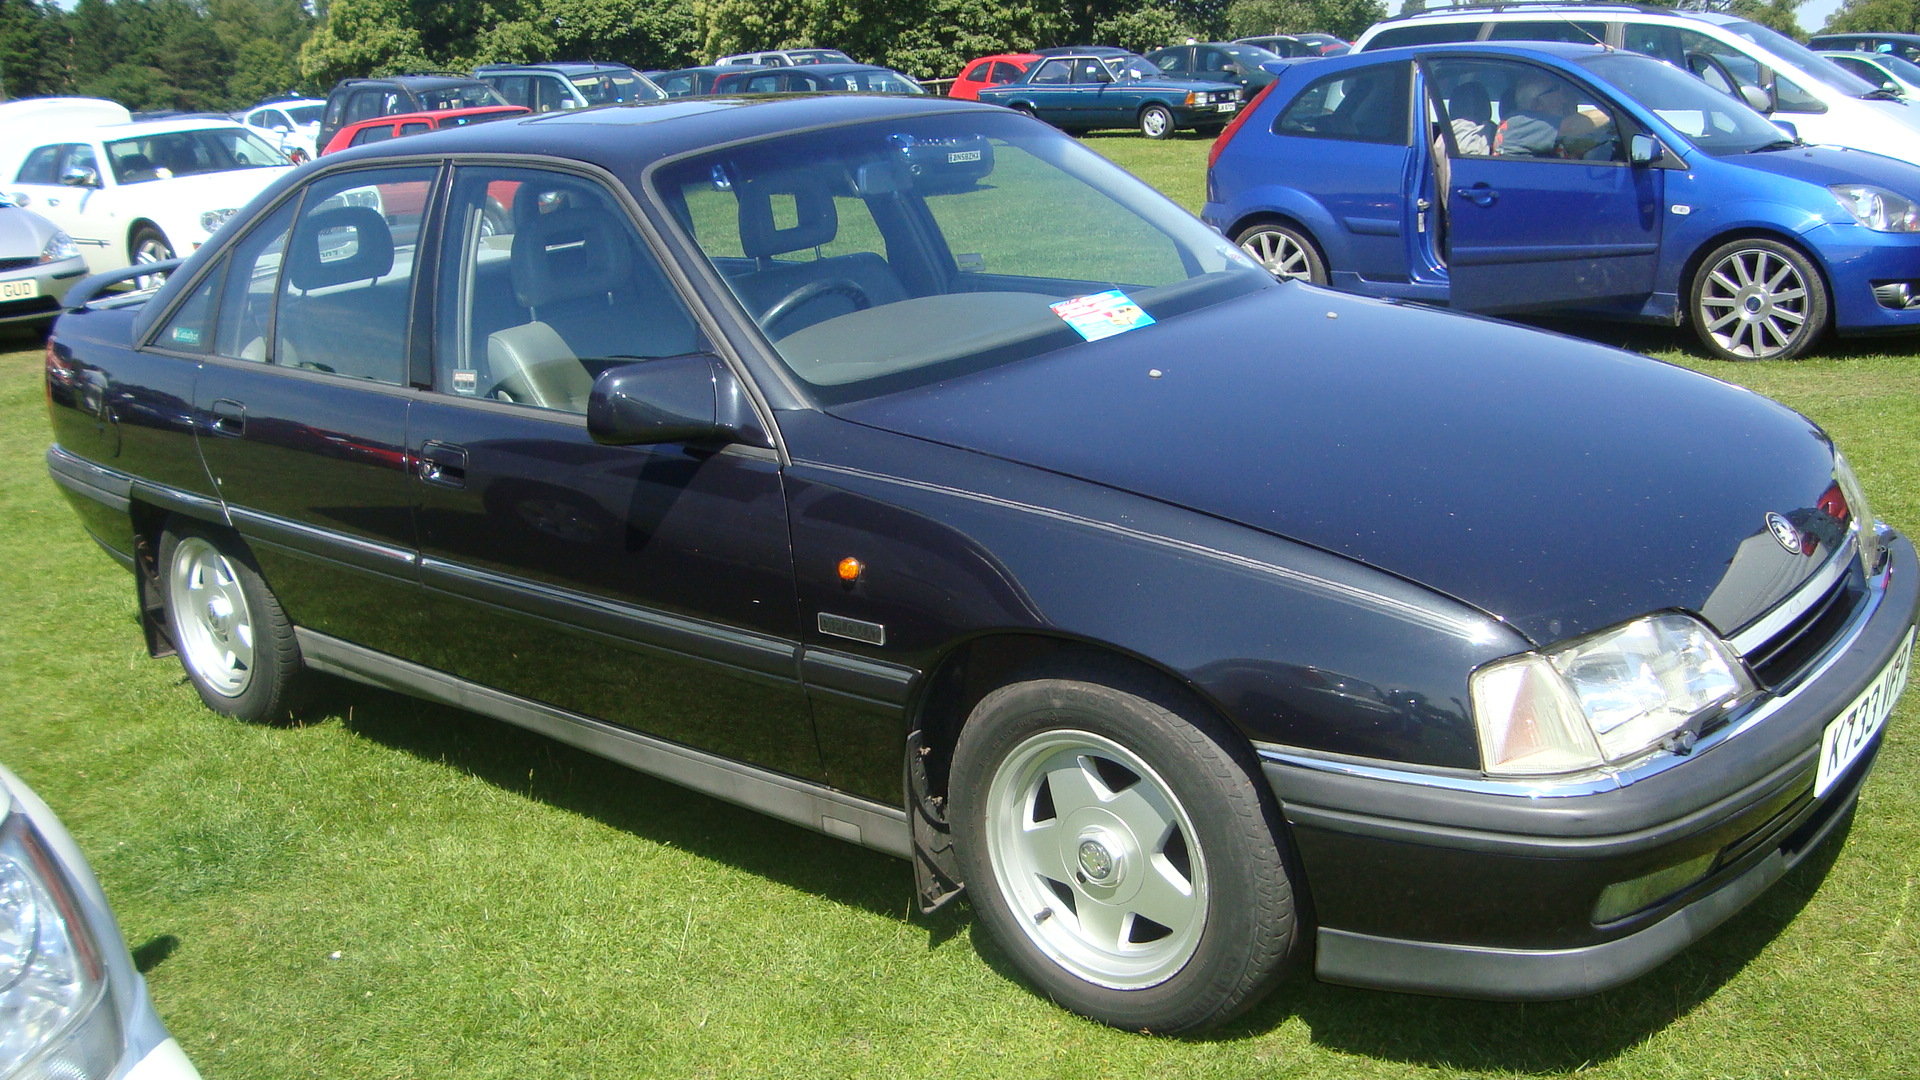 vauxhall lotus carlton wiki vauxhall carlton lotus motoburg file 1984 vauxhall carlton 2000 l. Black Bedroom Furniture Sets. Home Design Ideas